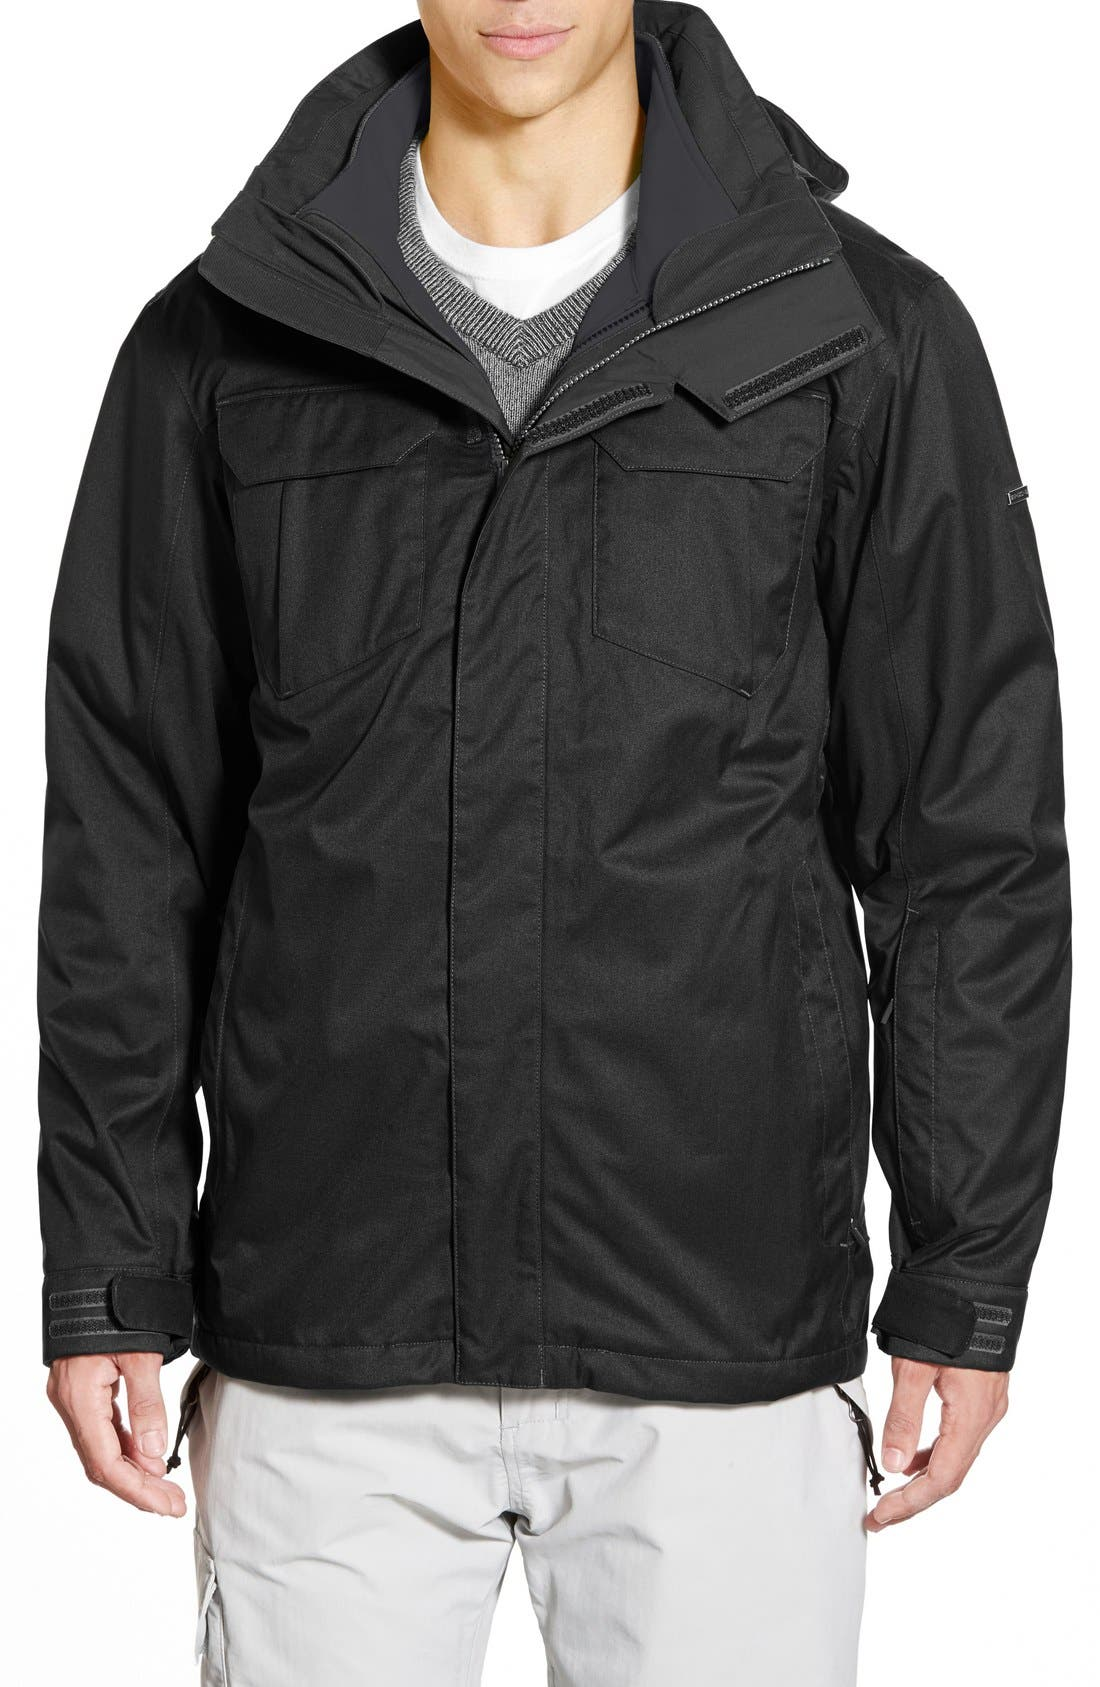 THE NORTH FACE TriClimate<sup>®</sup> 3-in-1 Jacket, Main, color, 001